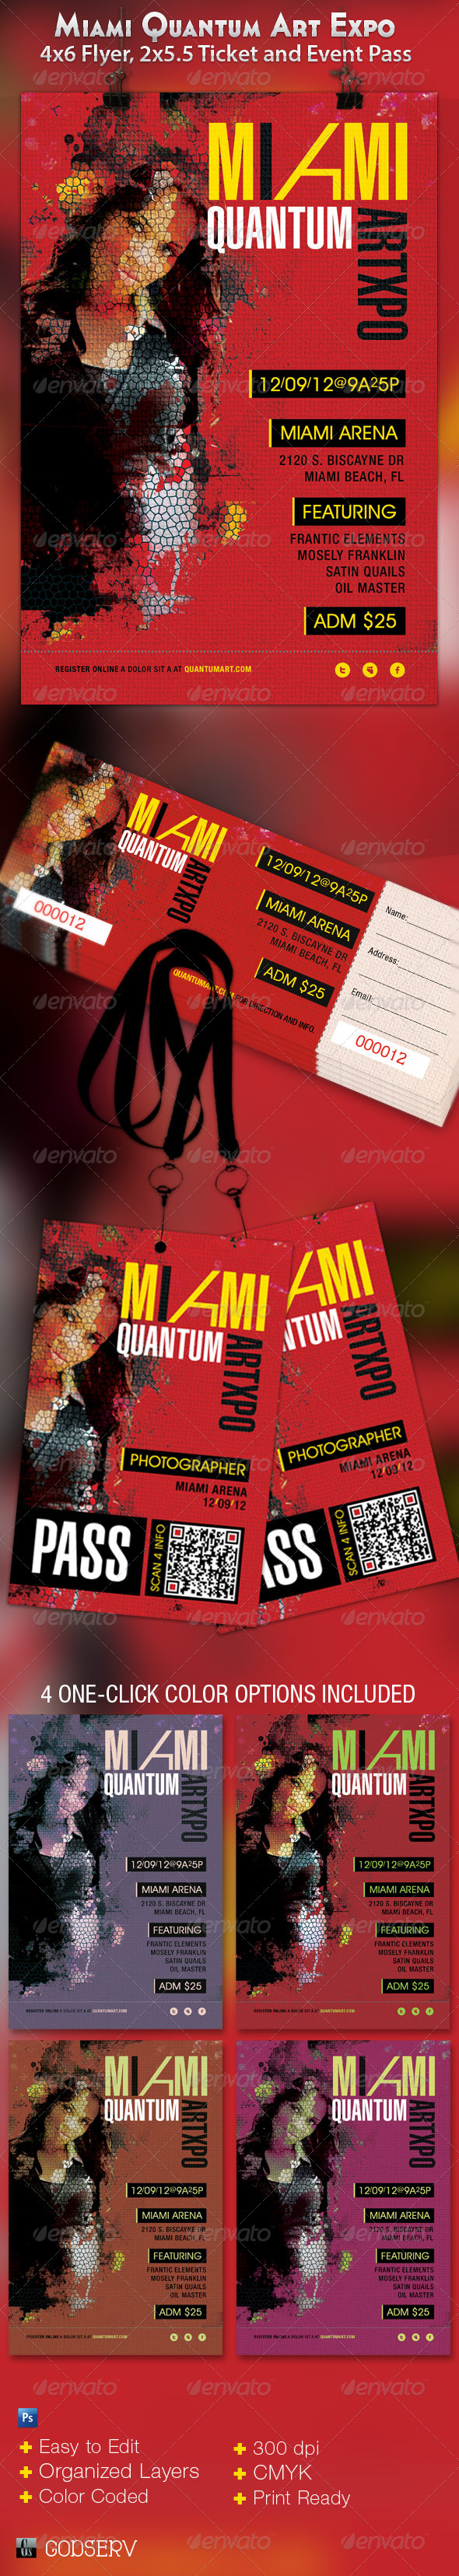 Miami Art Expo Flyer, Ticket and Event Pass - Events Flyers